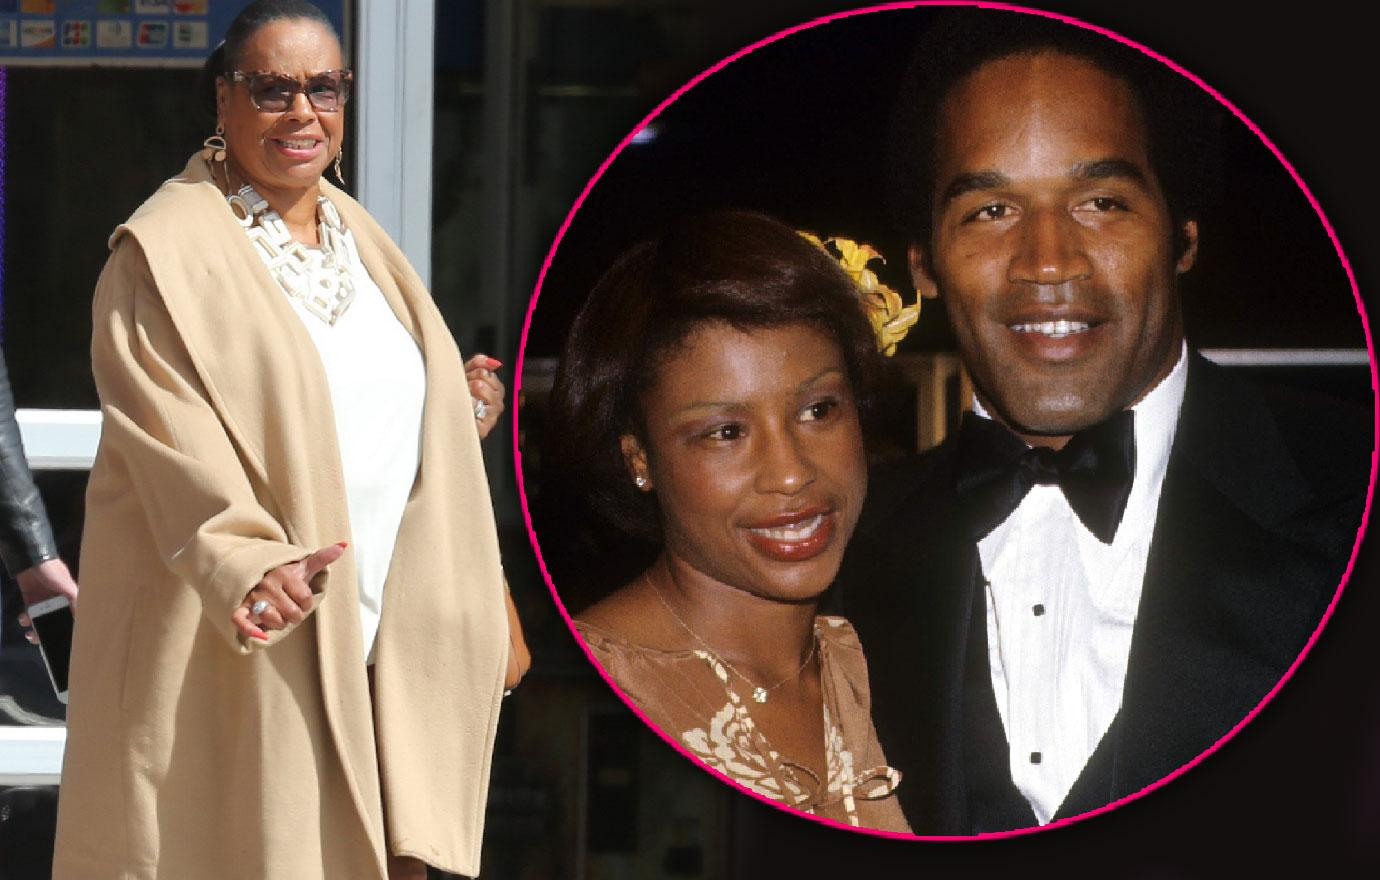 O.J. Simpson First Wife Marguerite Wants Nothing To Do With Him